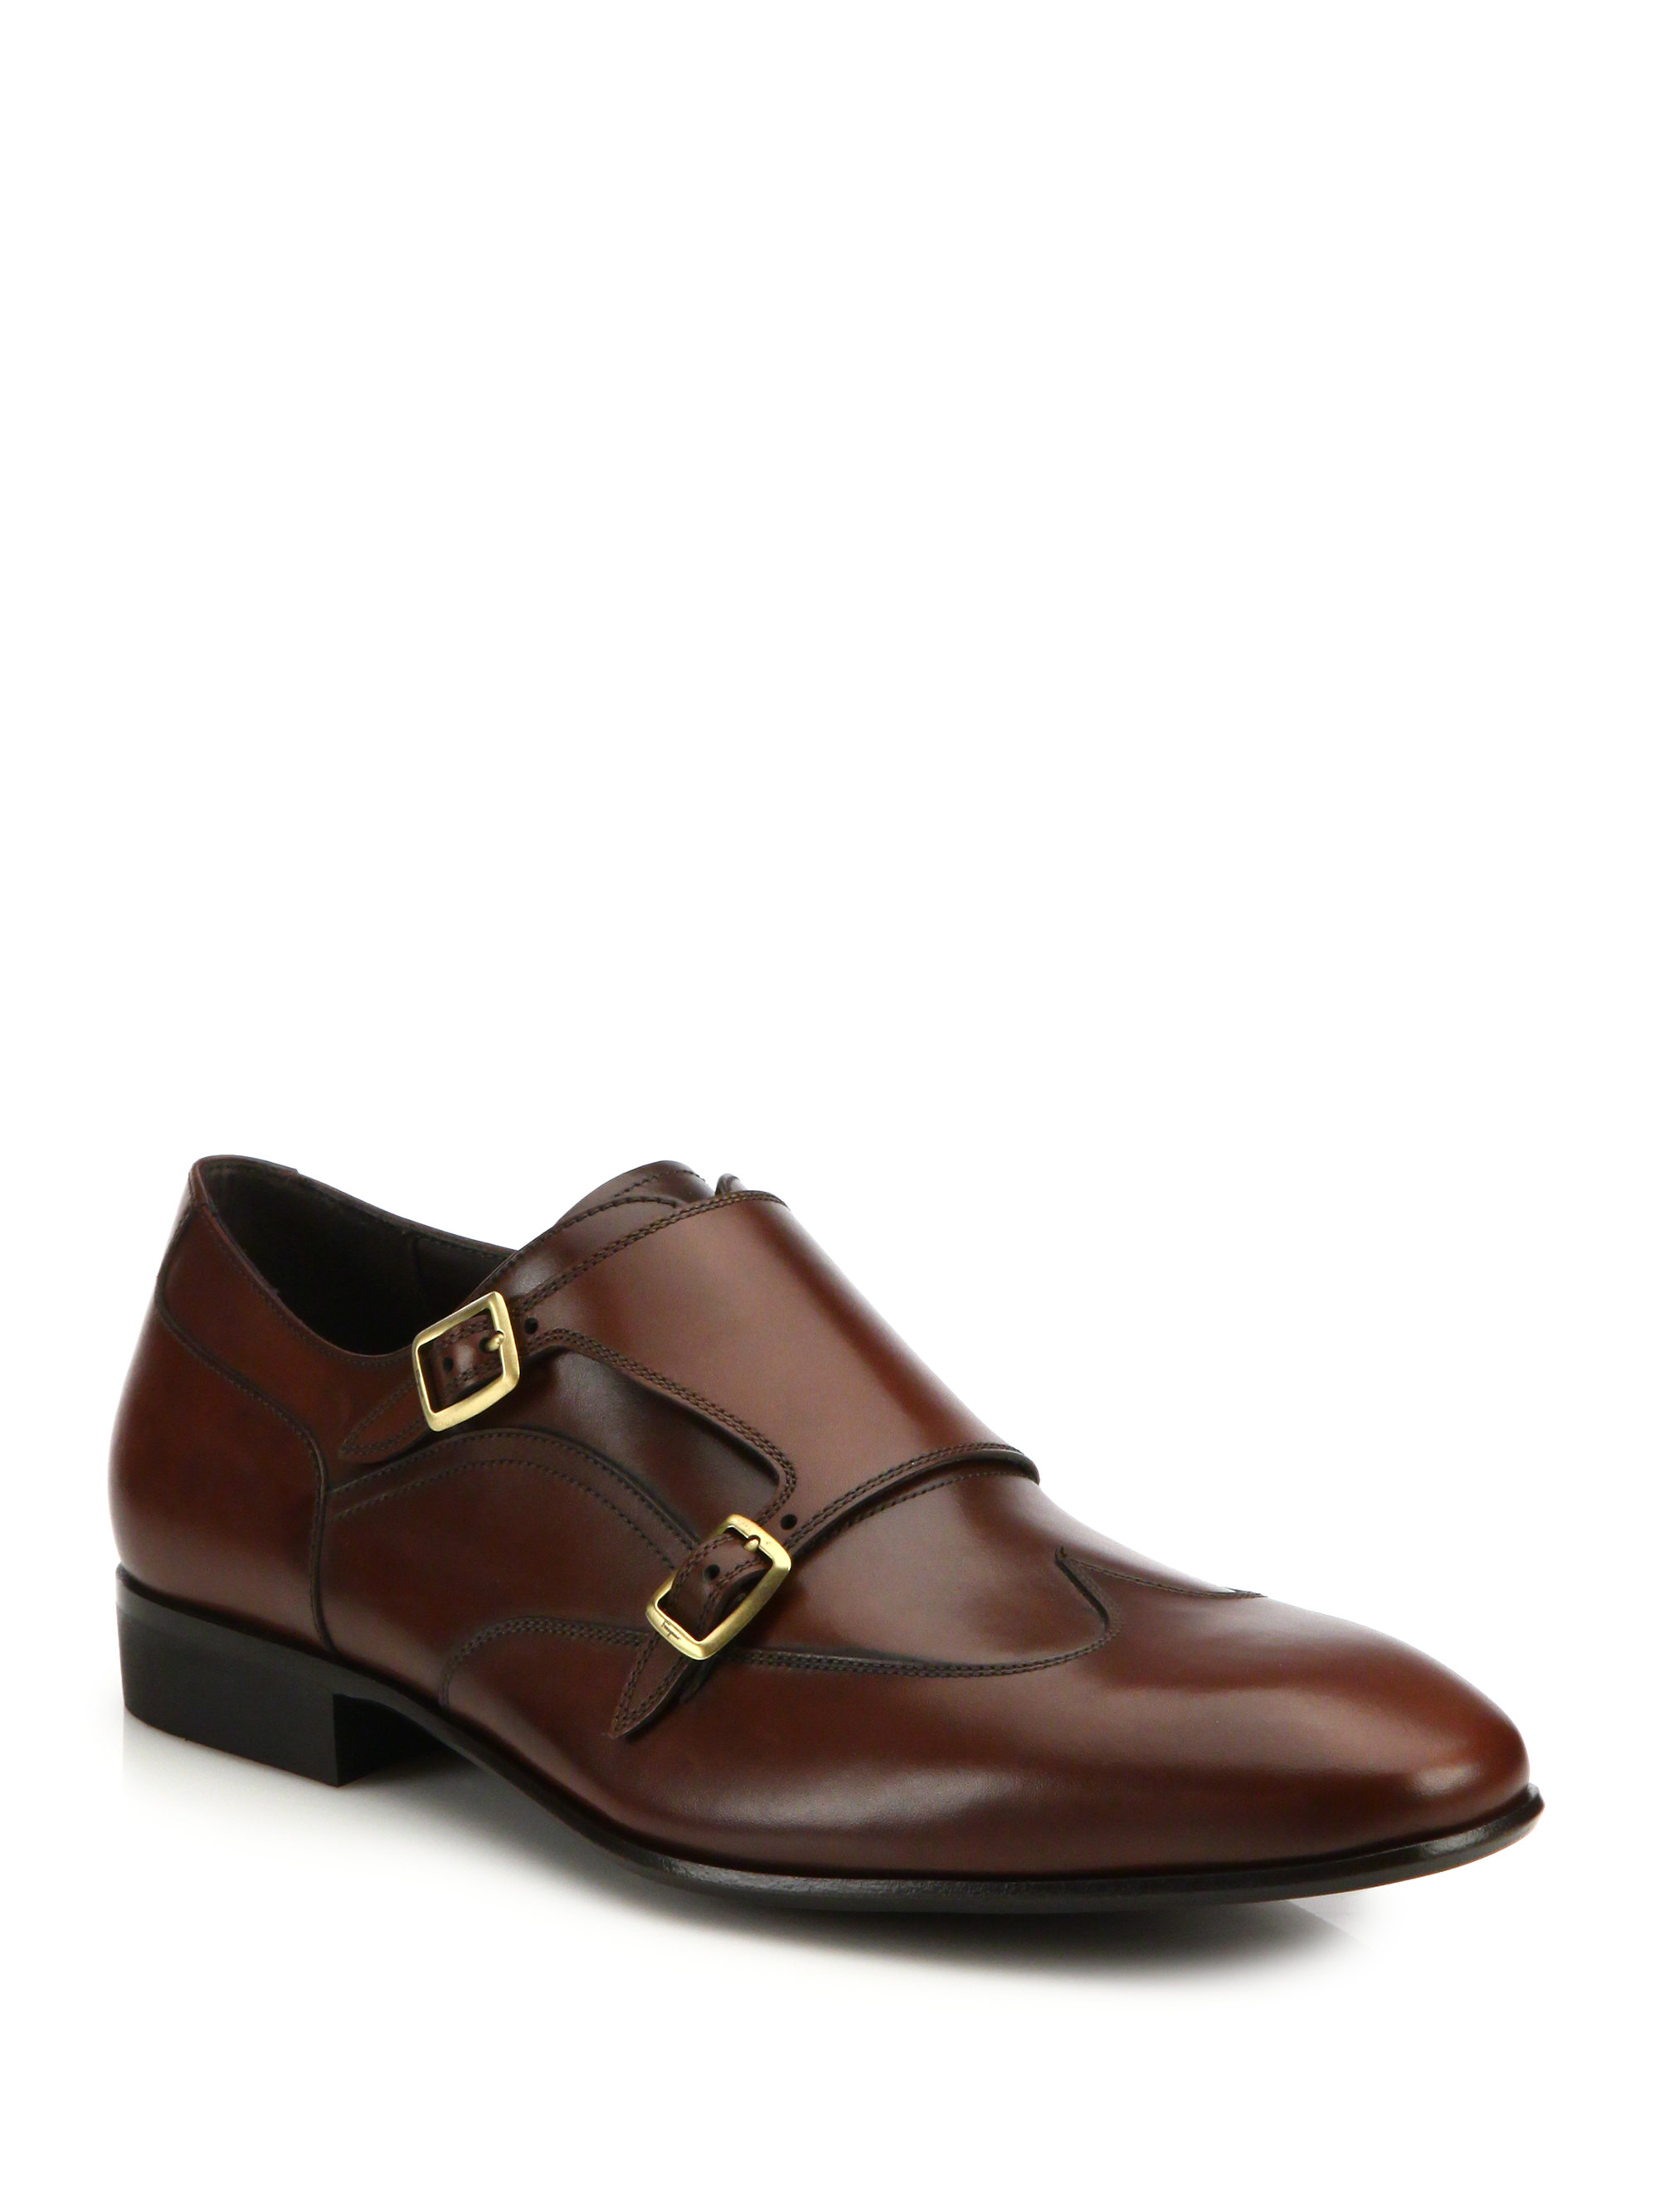 Merida Double Monk Strap Leather Wingtip Shoes